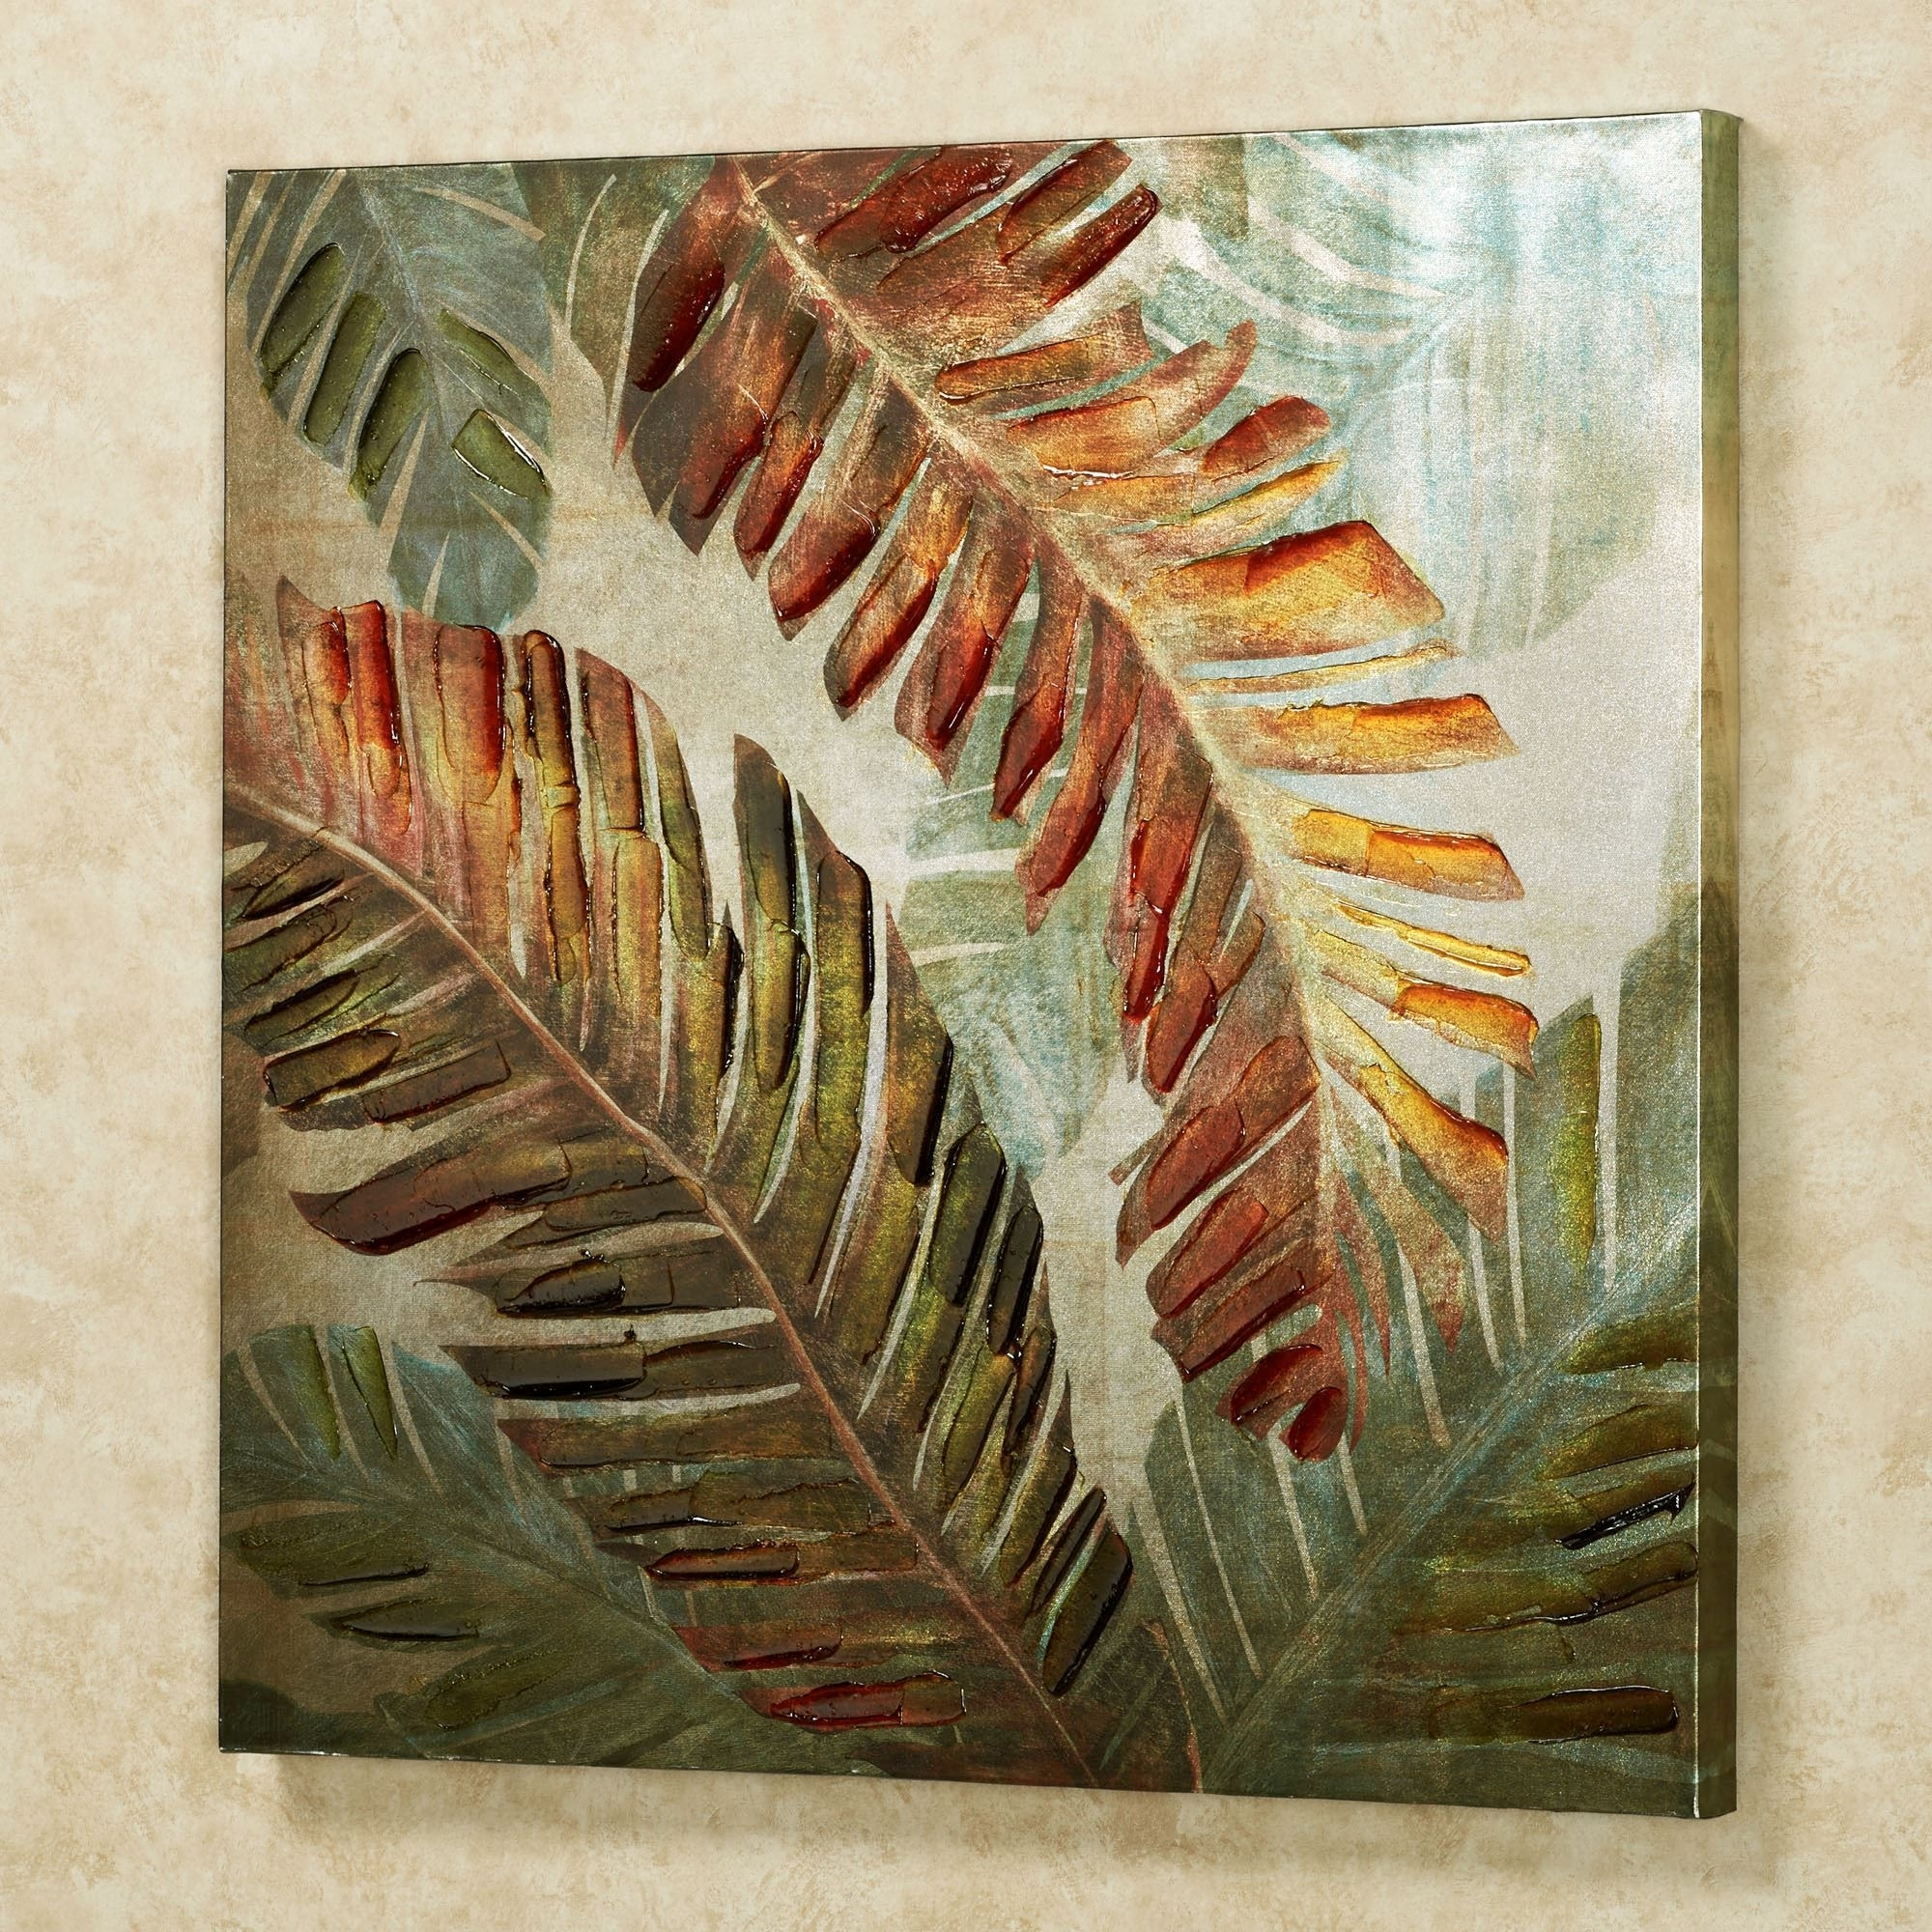 K Luxury Tropical Wall Art   Wall Decoration And Wall Art Ideas In Tropical Wall Art (Photo 5 of 20)